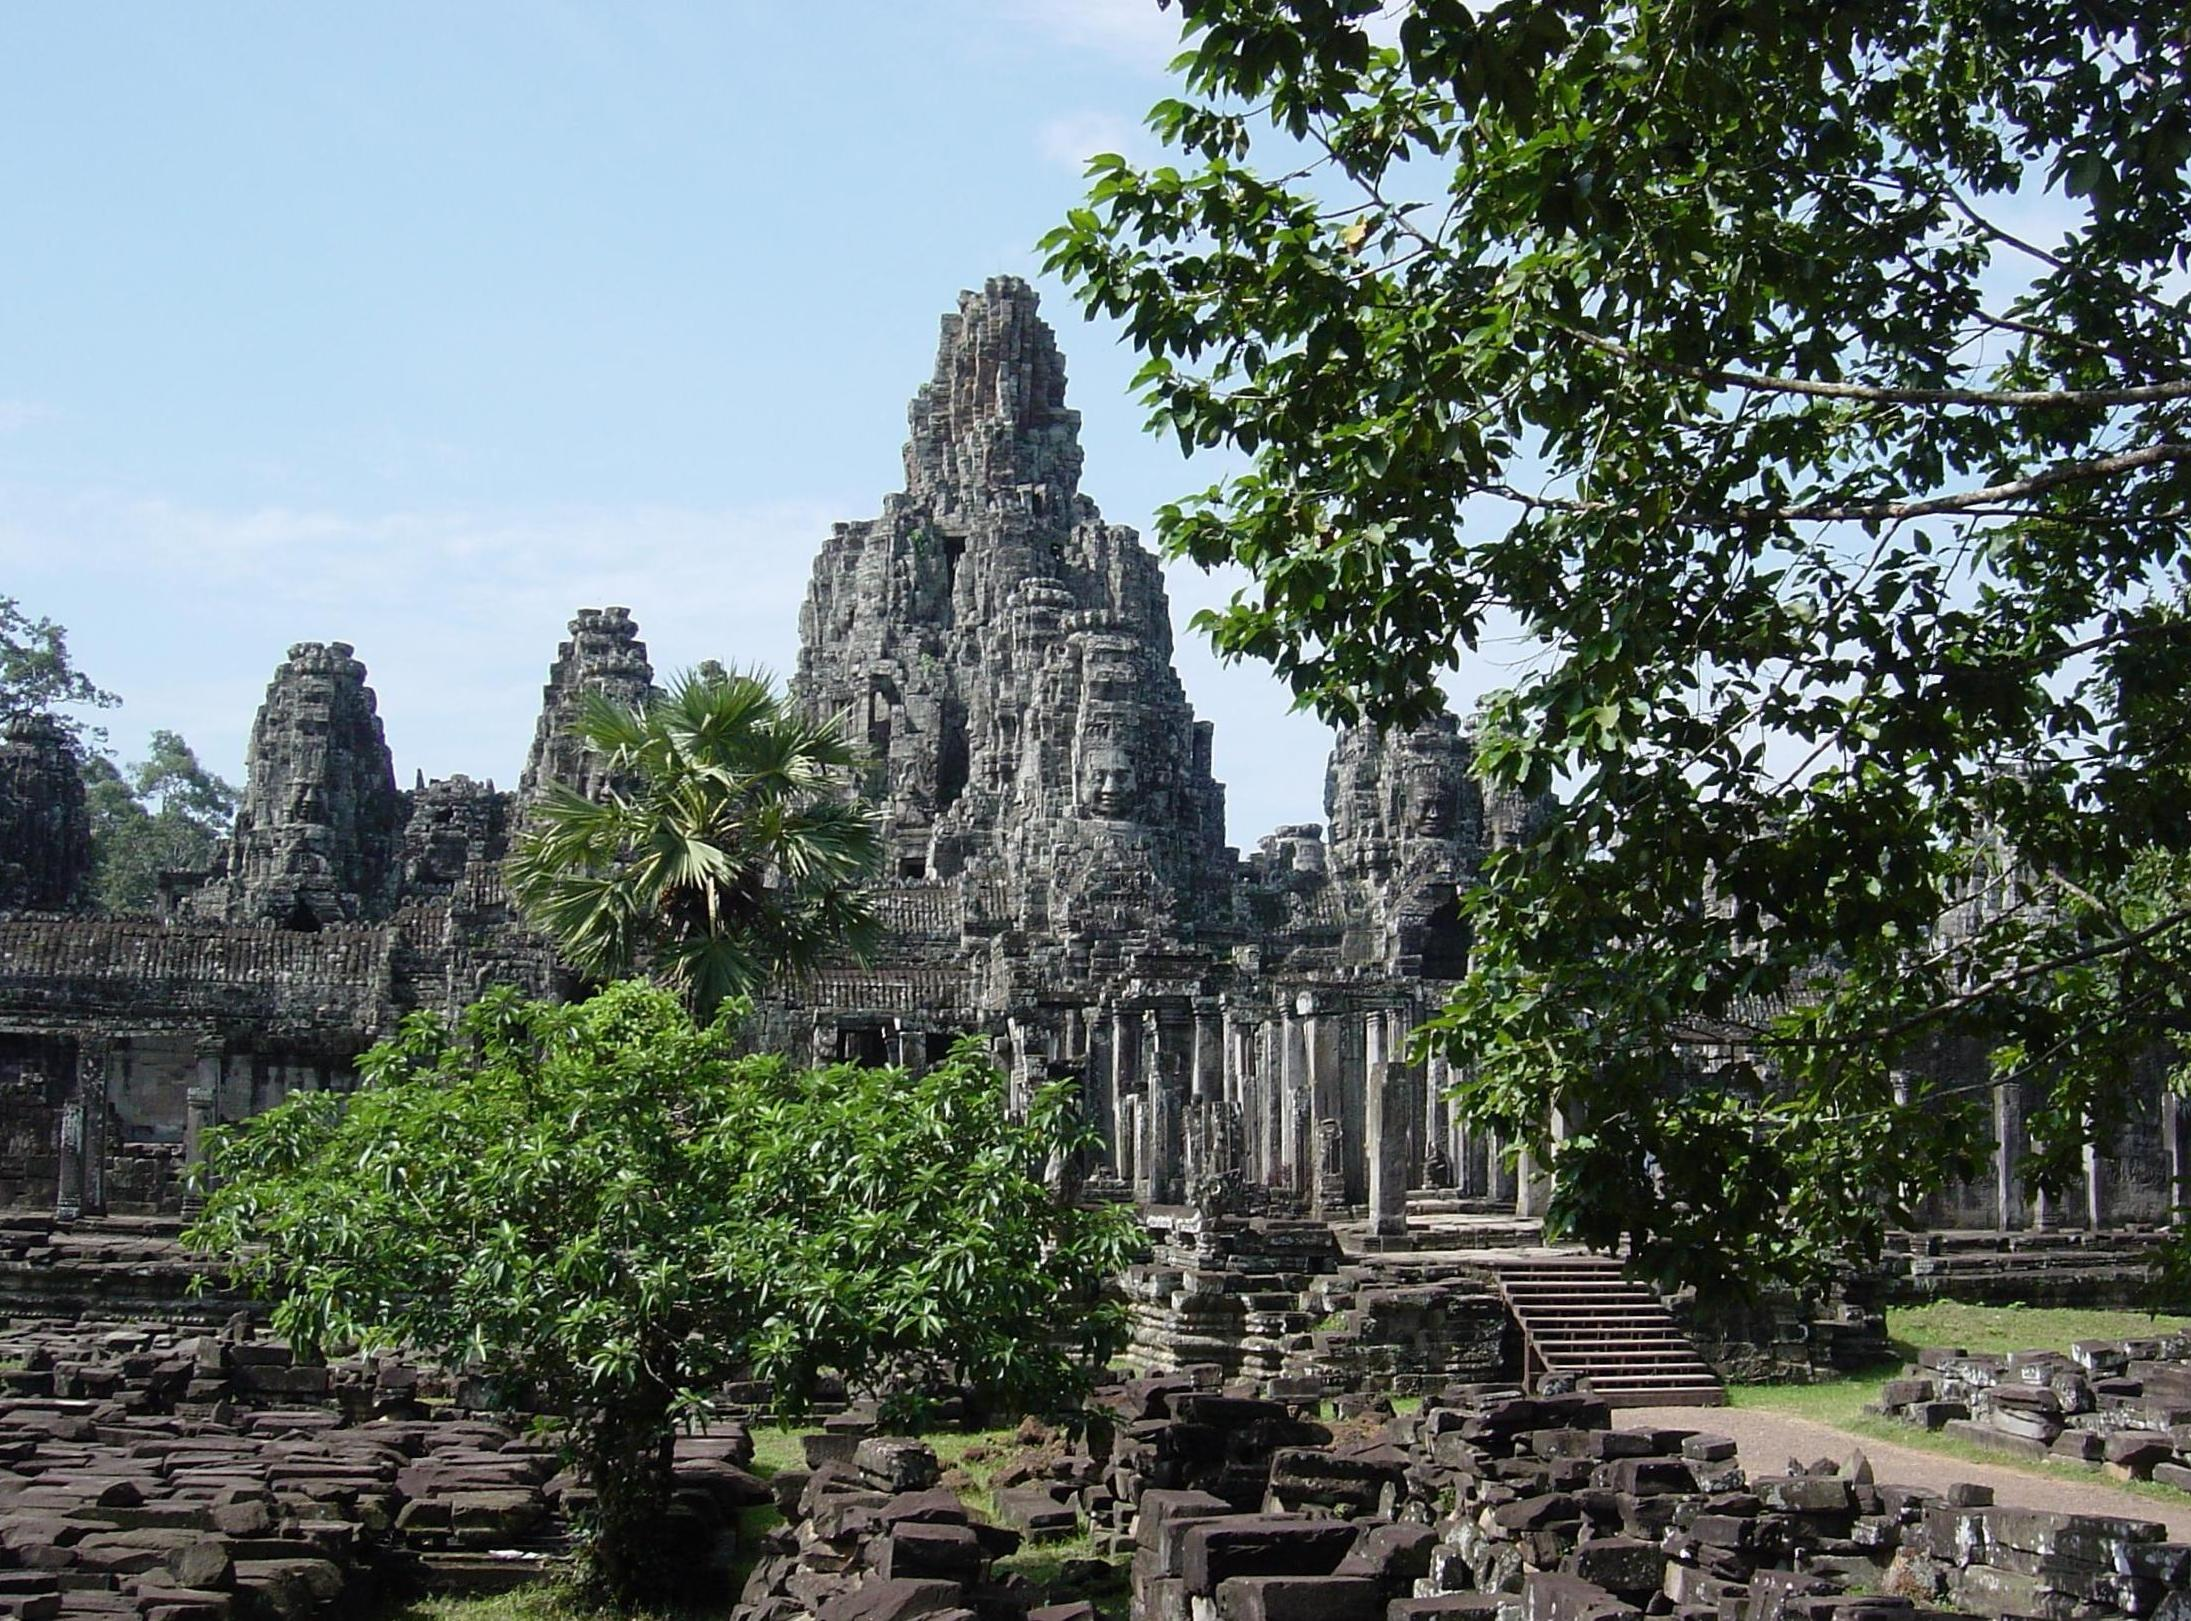 Bayon temple seen from outside